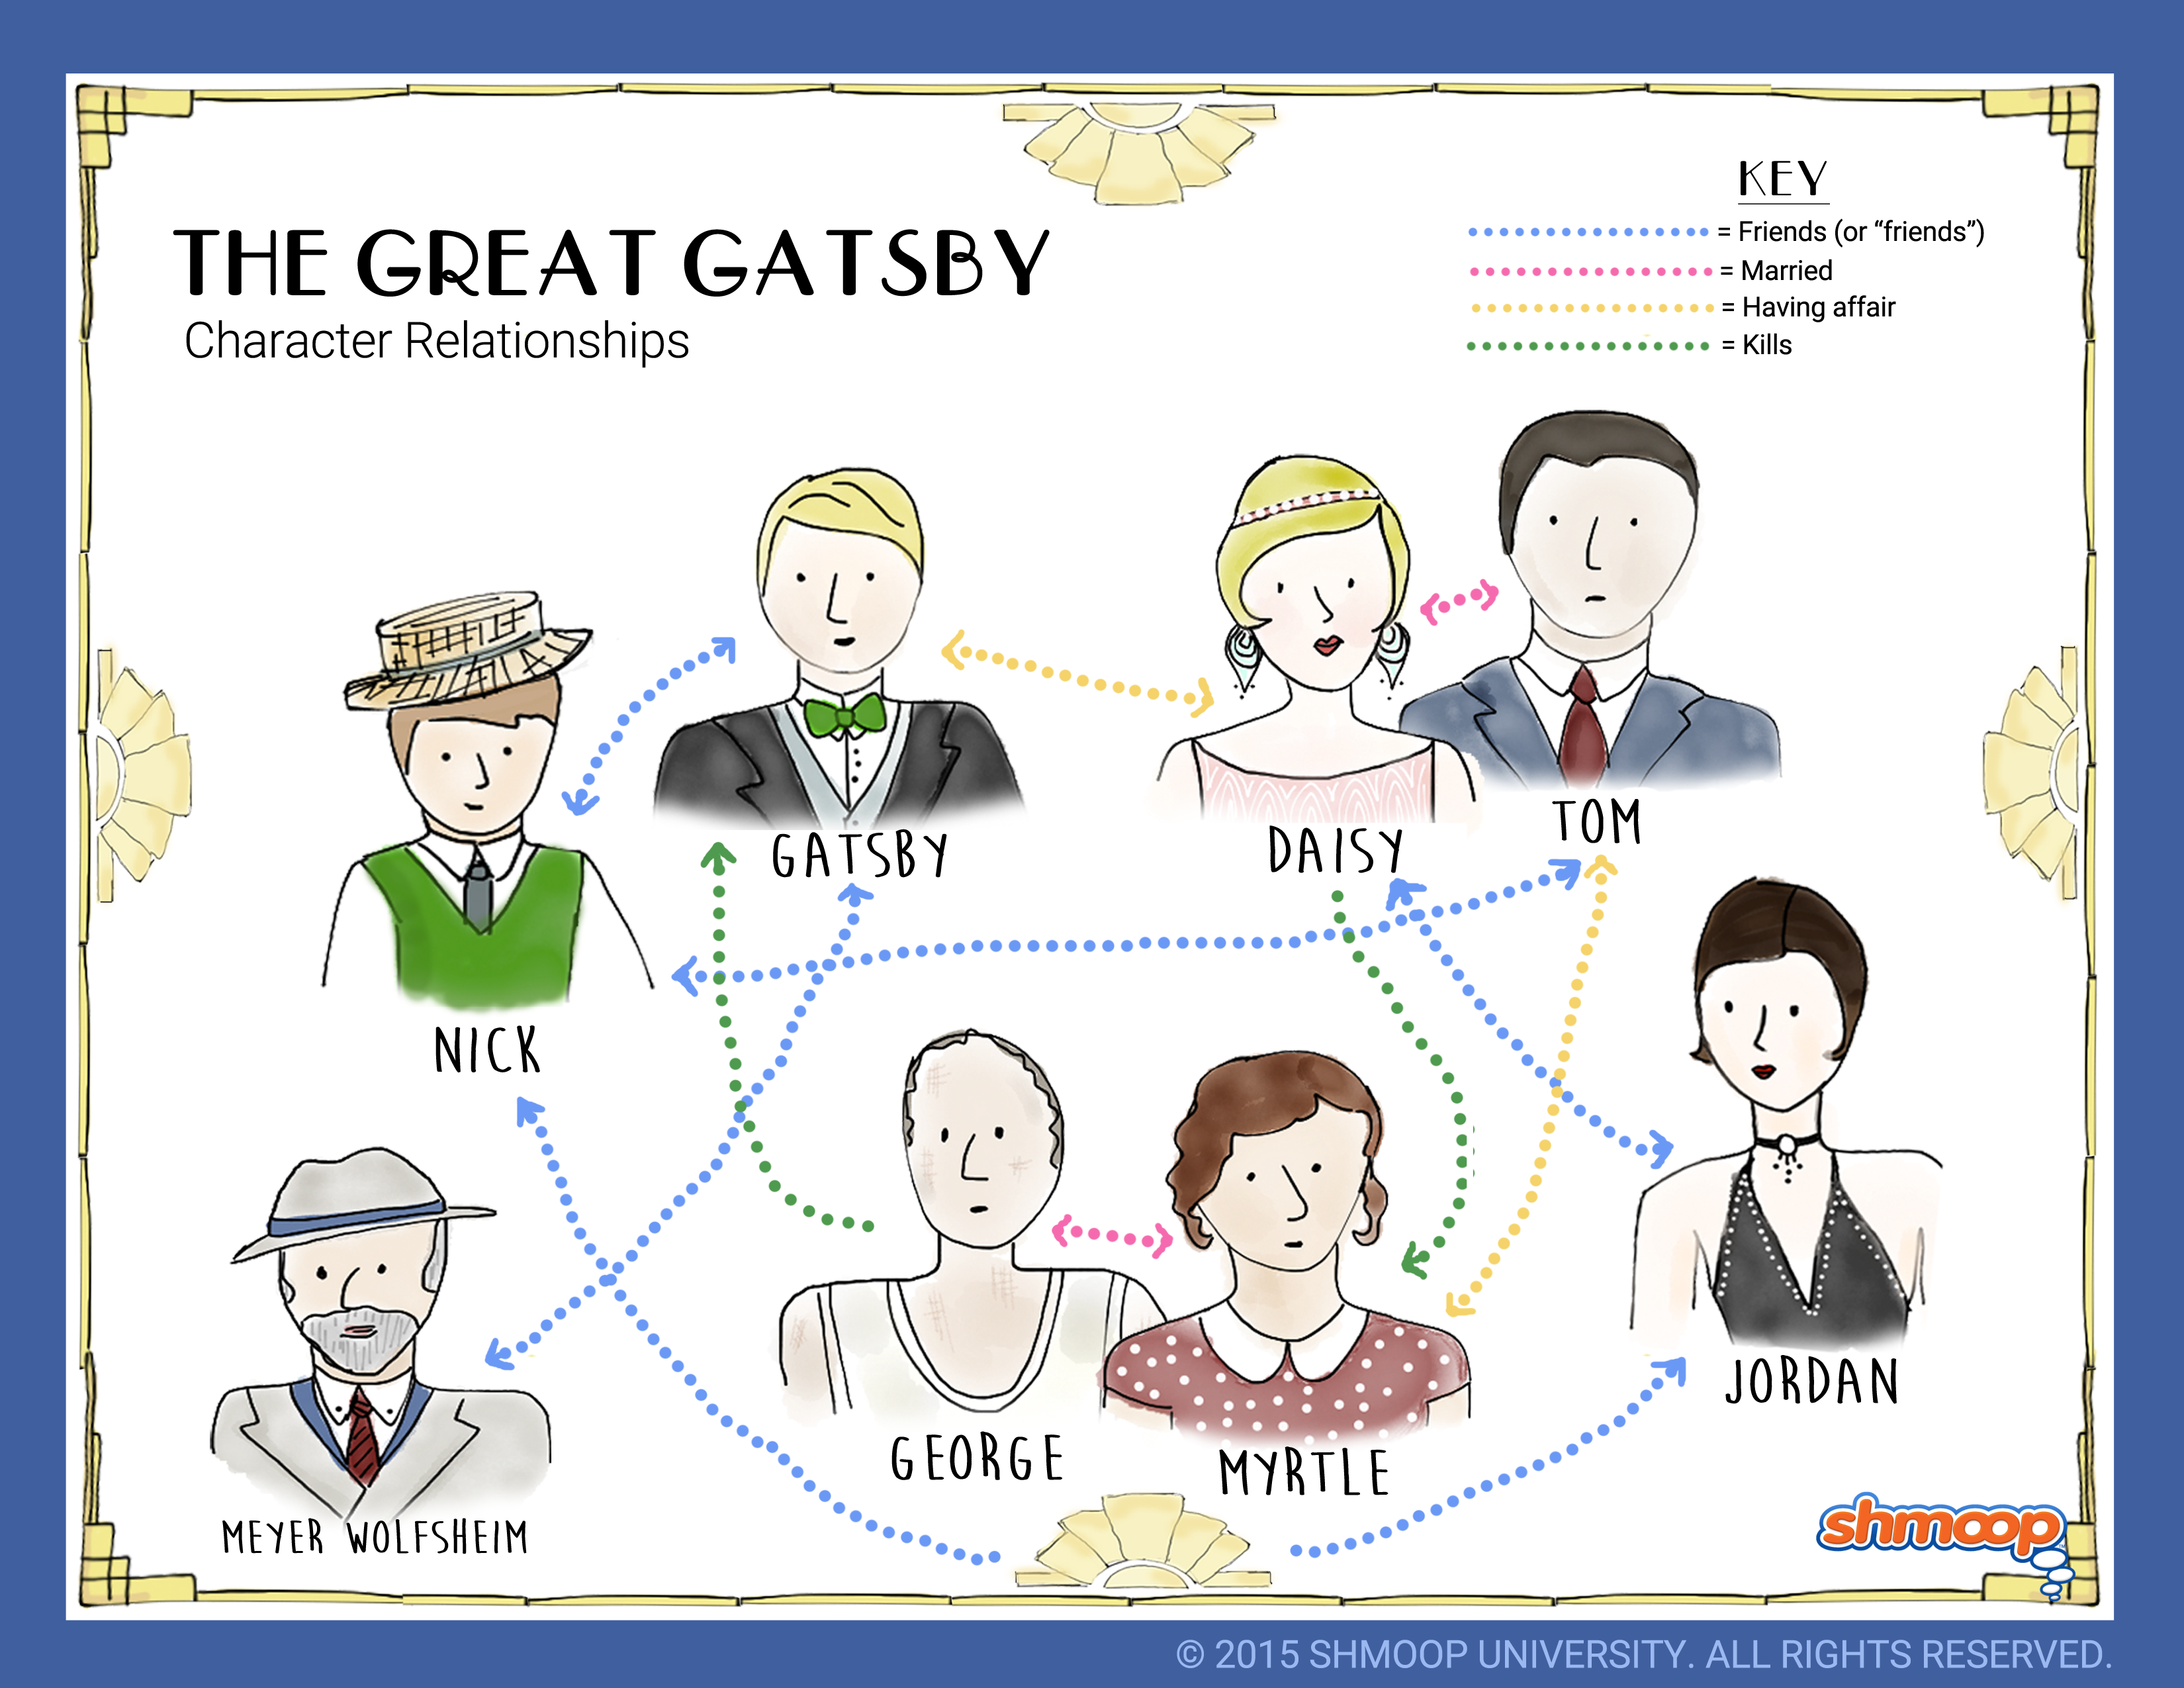 gatsby and daisy relationship timeline diagram